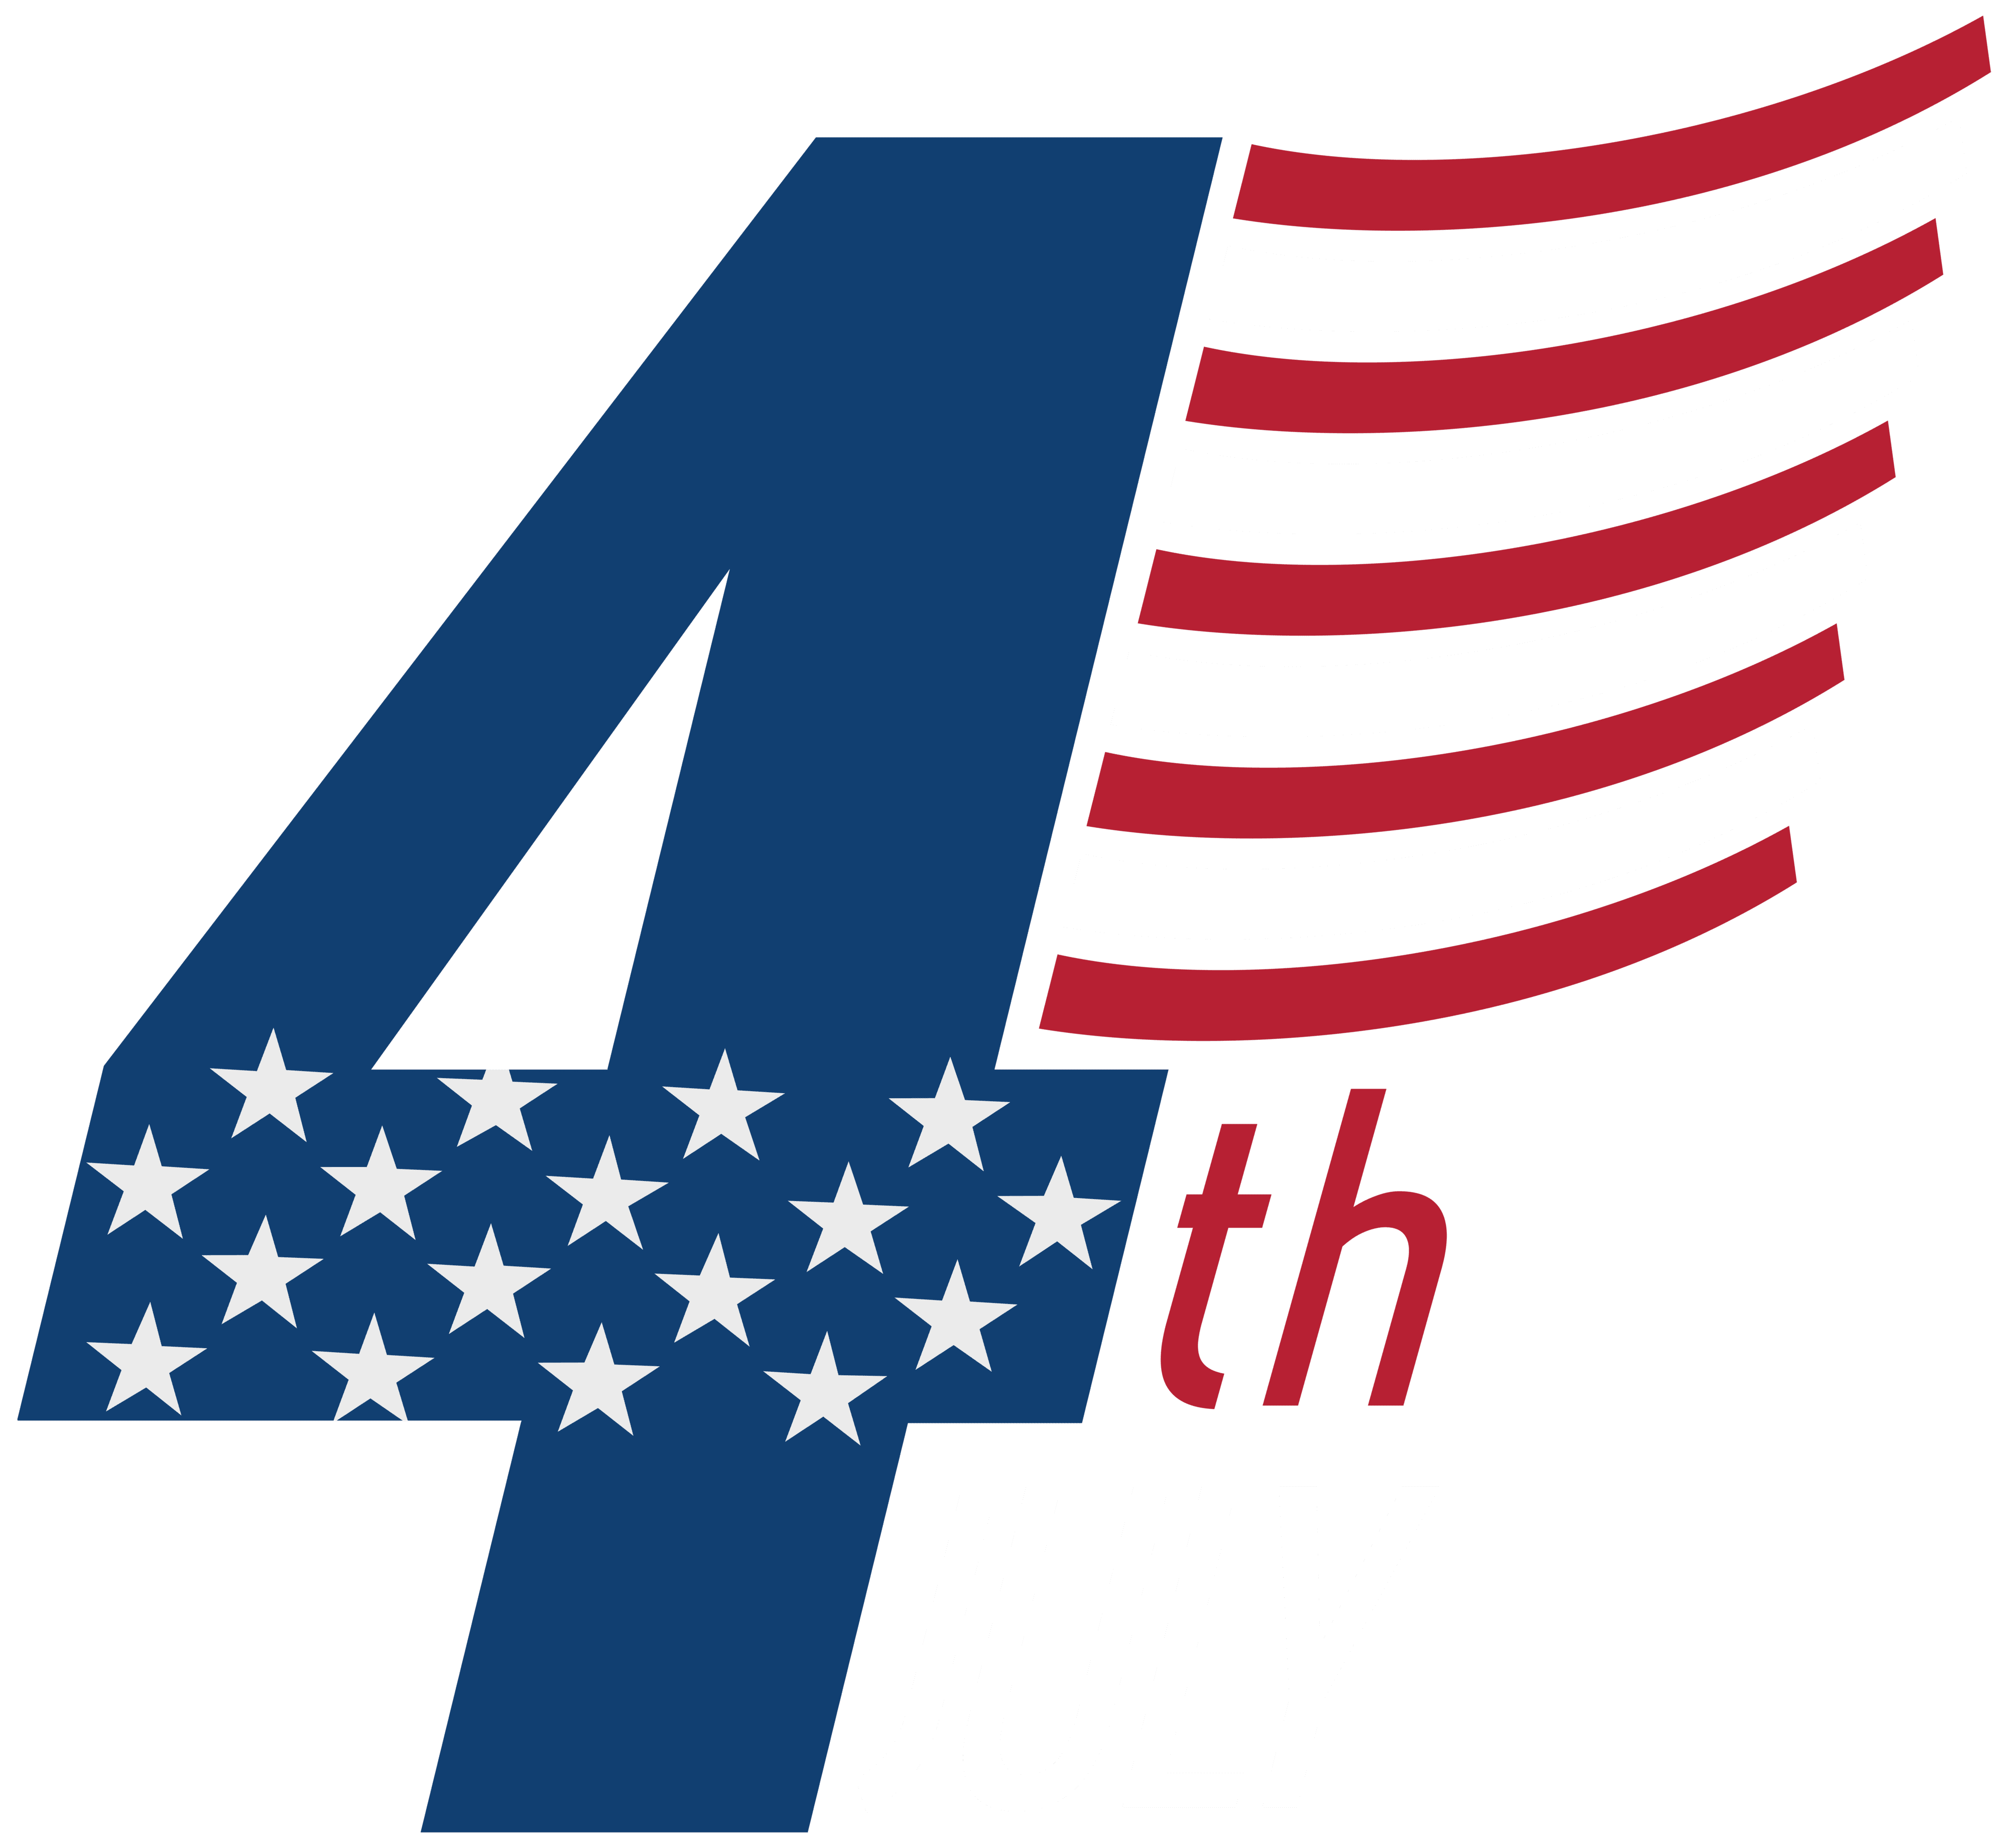 Streamers clipart 4th july.  th png clip